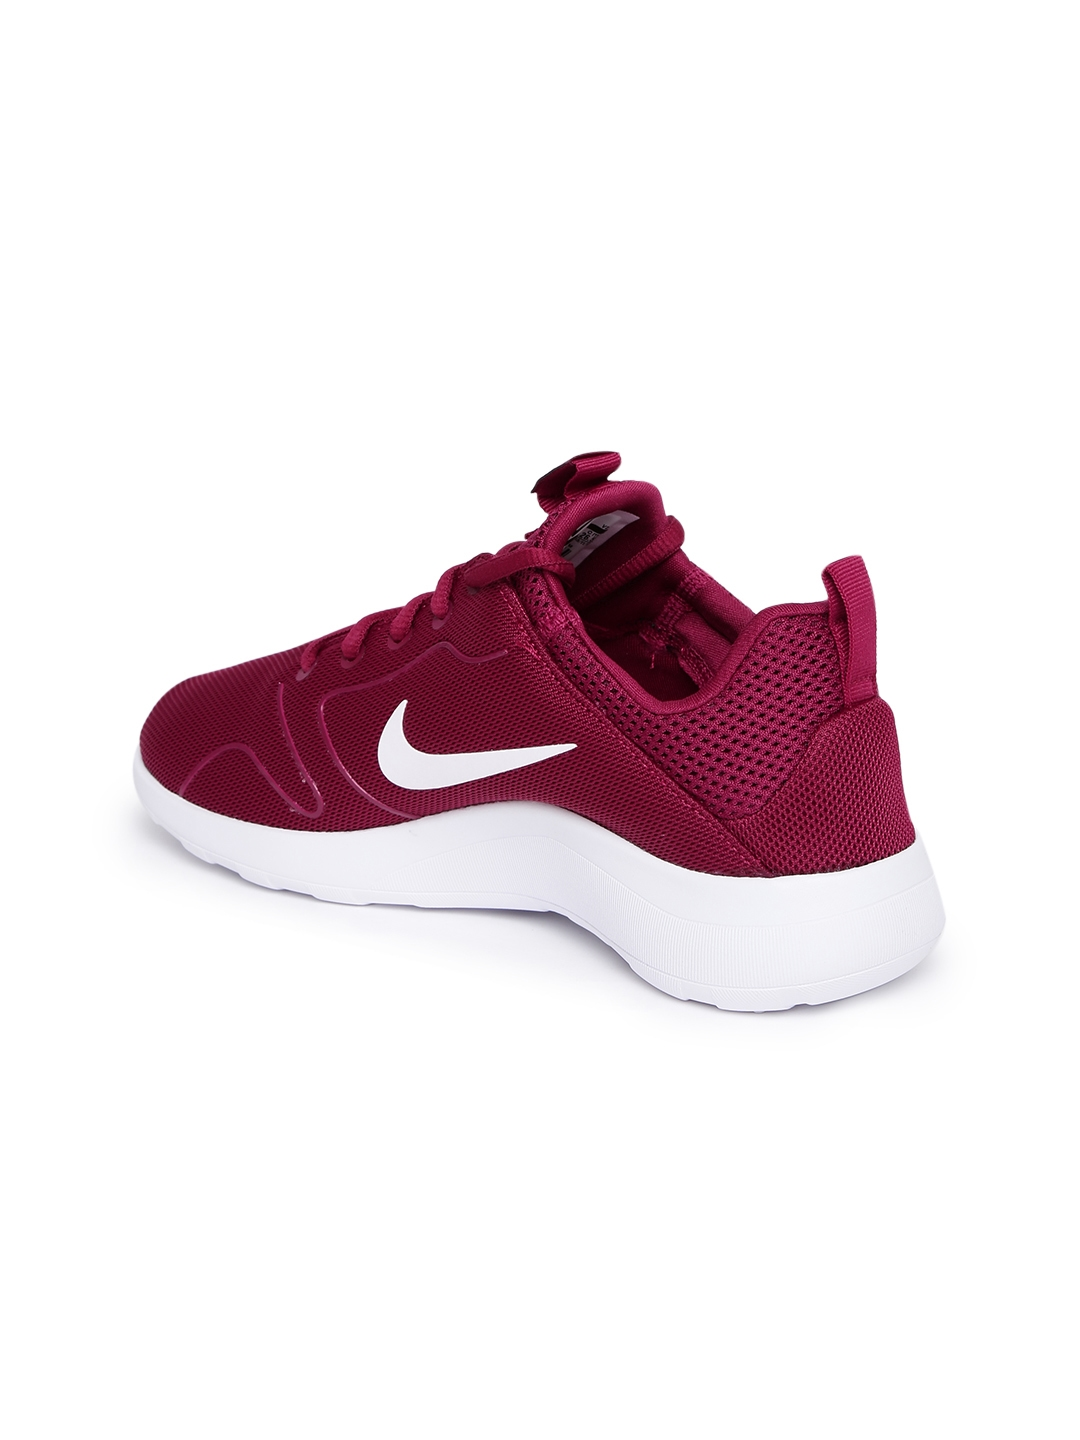 newest collection 4e5c9 f275a Nike Women Burgundy KAISHI 2.0 Sneakers